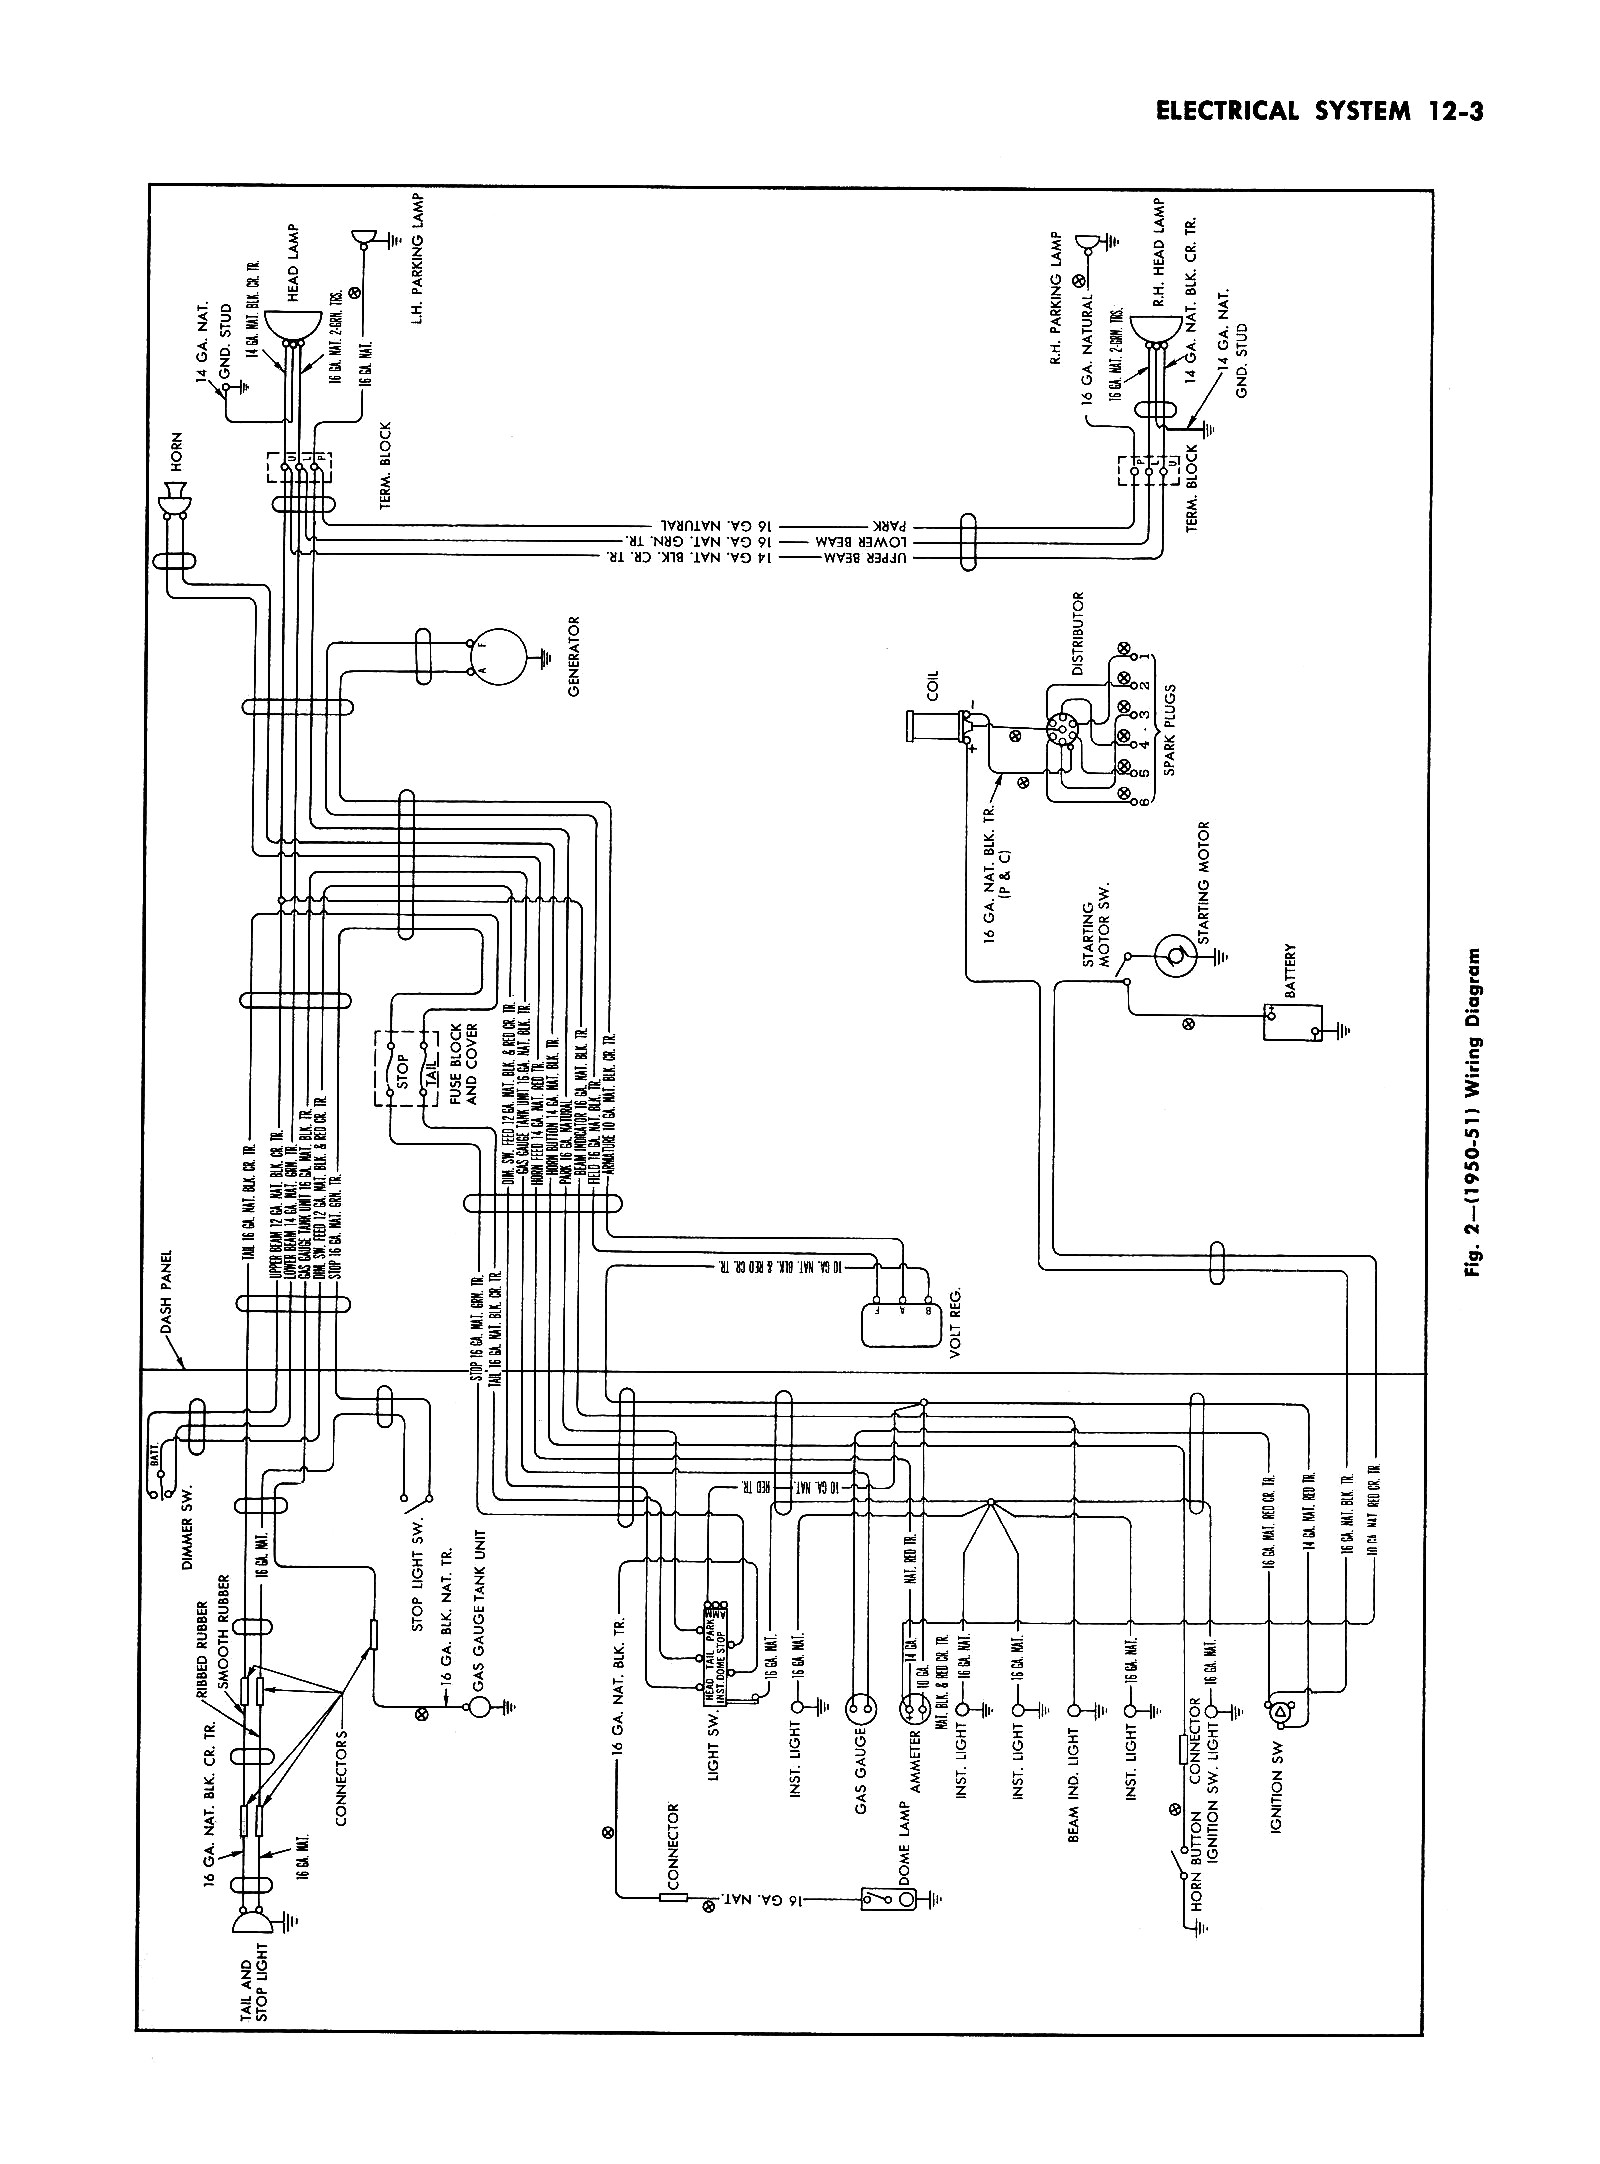 1958 chevy apache truck on 1958 chevy apache truck wiring diagram